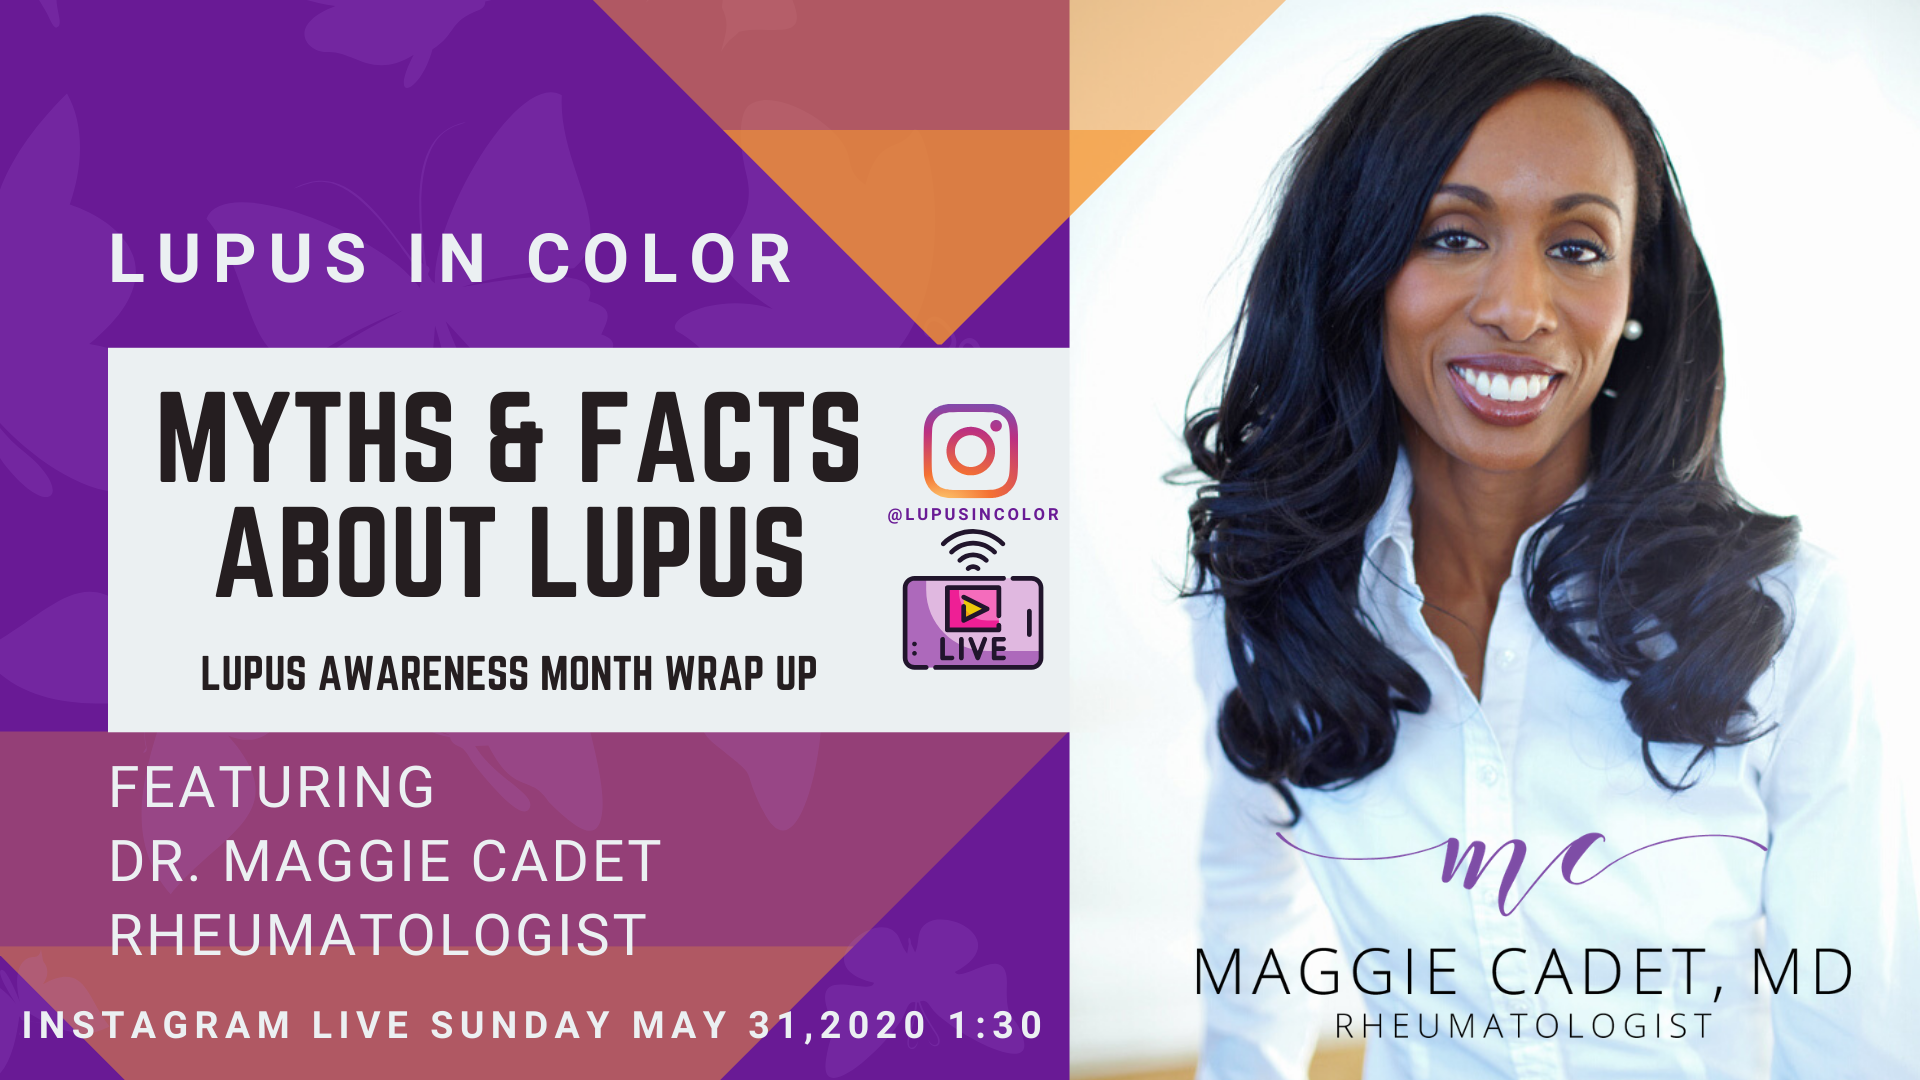 Lupus Myths & Facts with Dr. Maggie Cadet